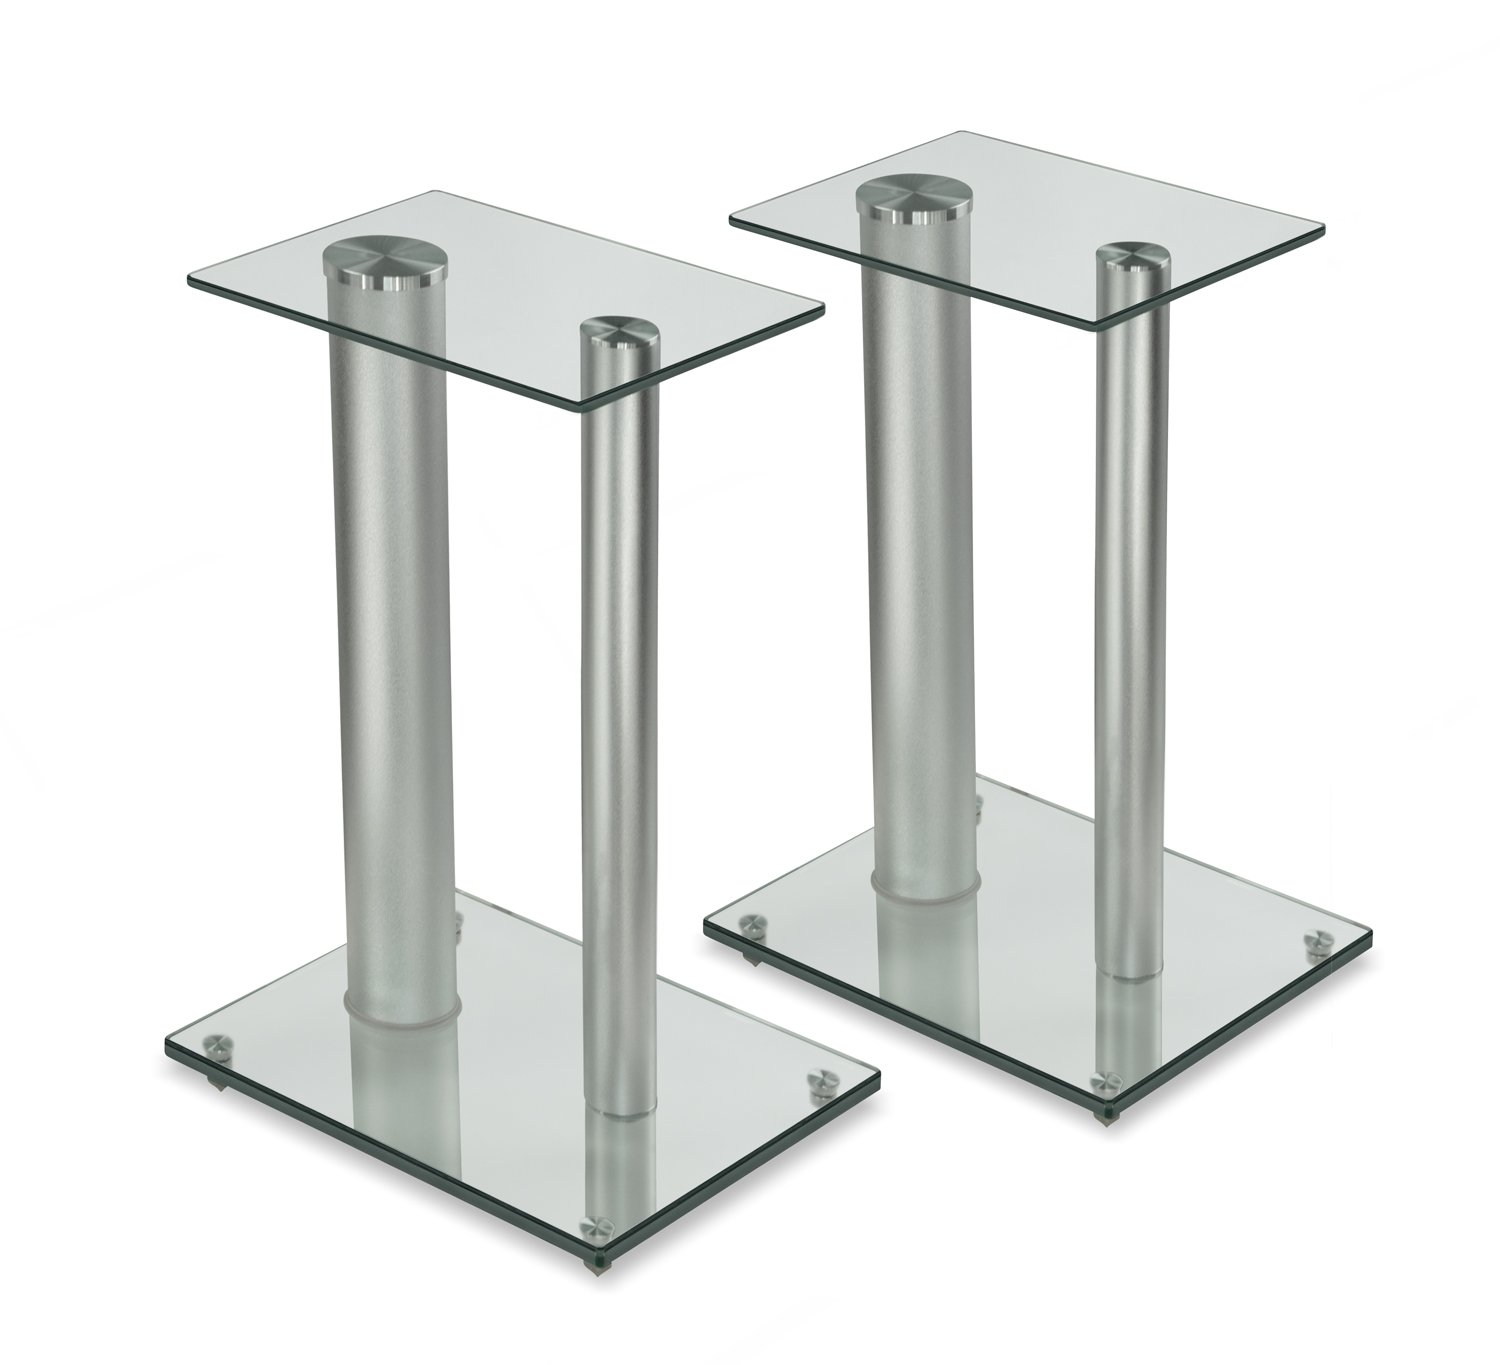 Mount-It! Bookshelf and Floor Speaker Stands for Surround Sound Home Theaters, 18 Inch High, 22 Lbs Capacity, Tempered Glass and Aluminum, Clear and Silver, One Pair by Mount-It!